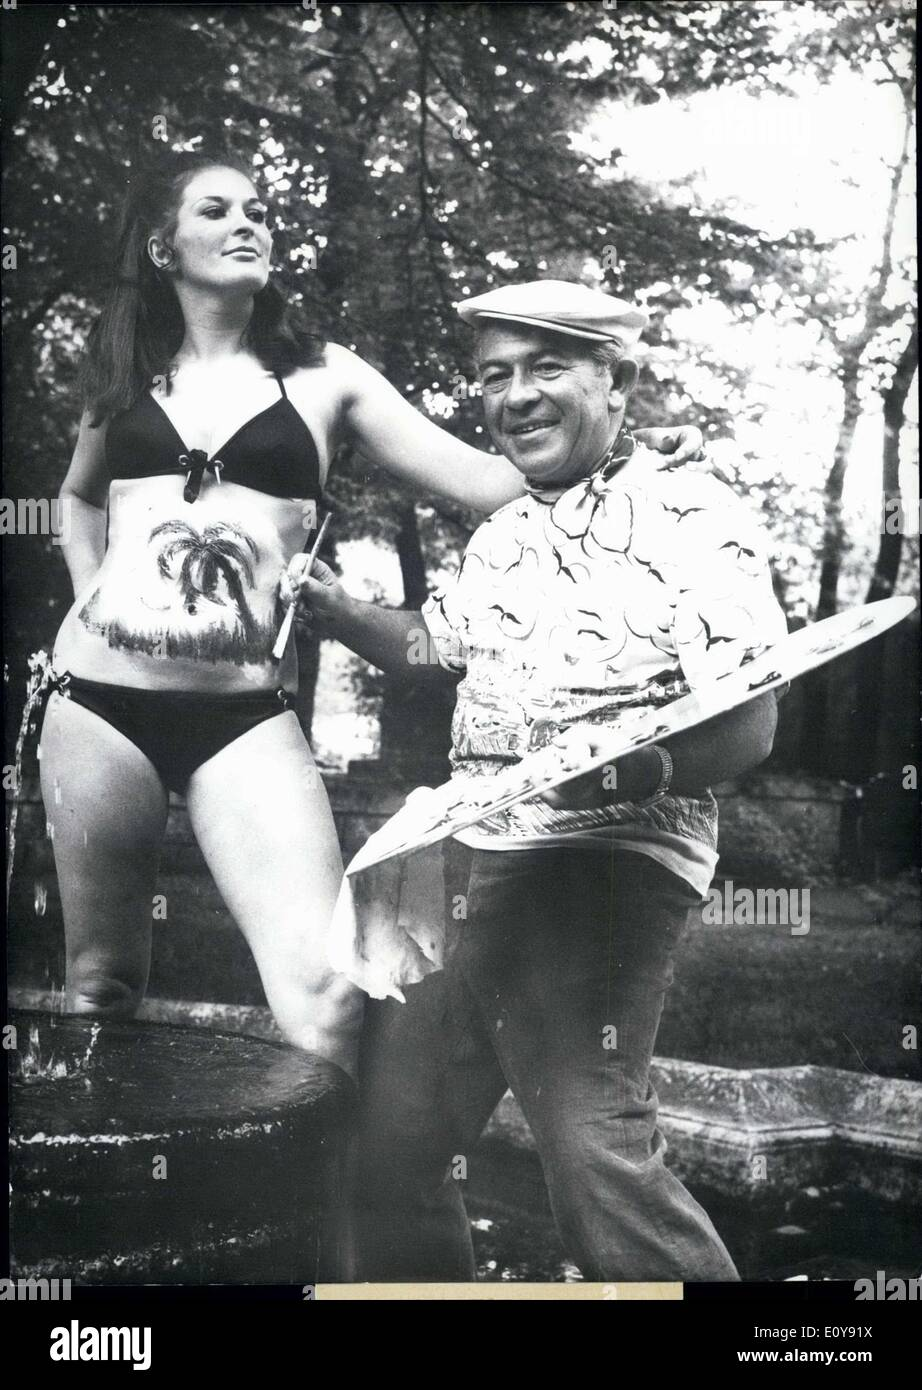 May 27, 1969 - American artist Edmund Adler is painting a ''vacation spot''  on the vacation-hungry model Renate Leeb.